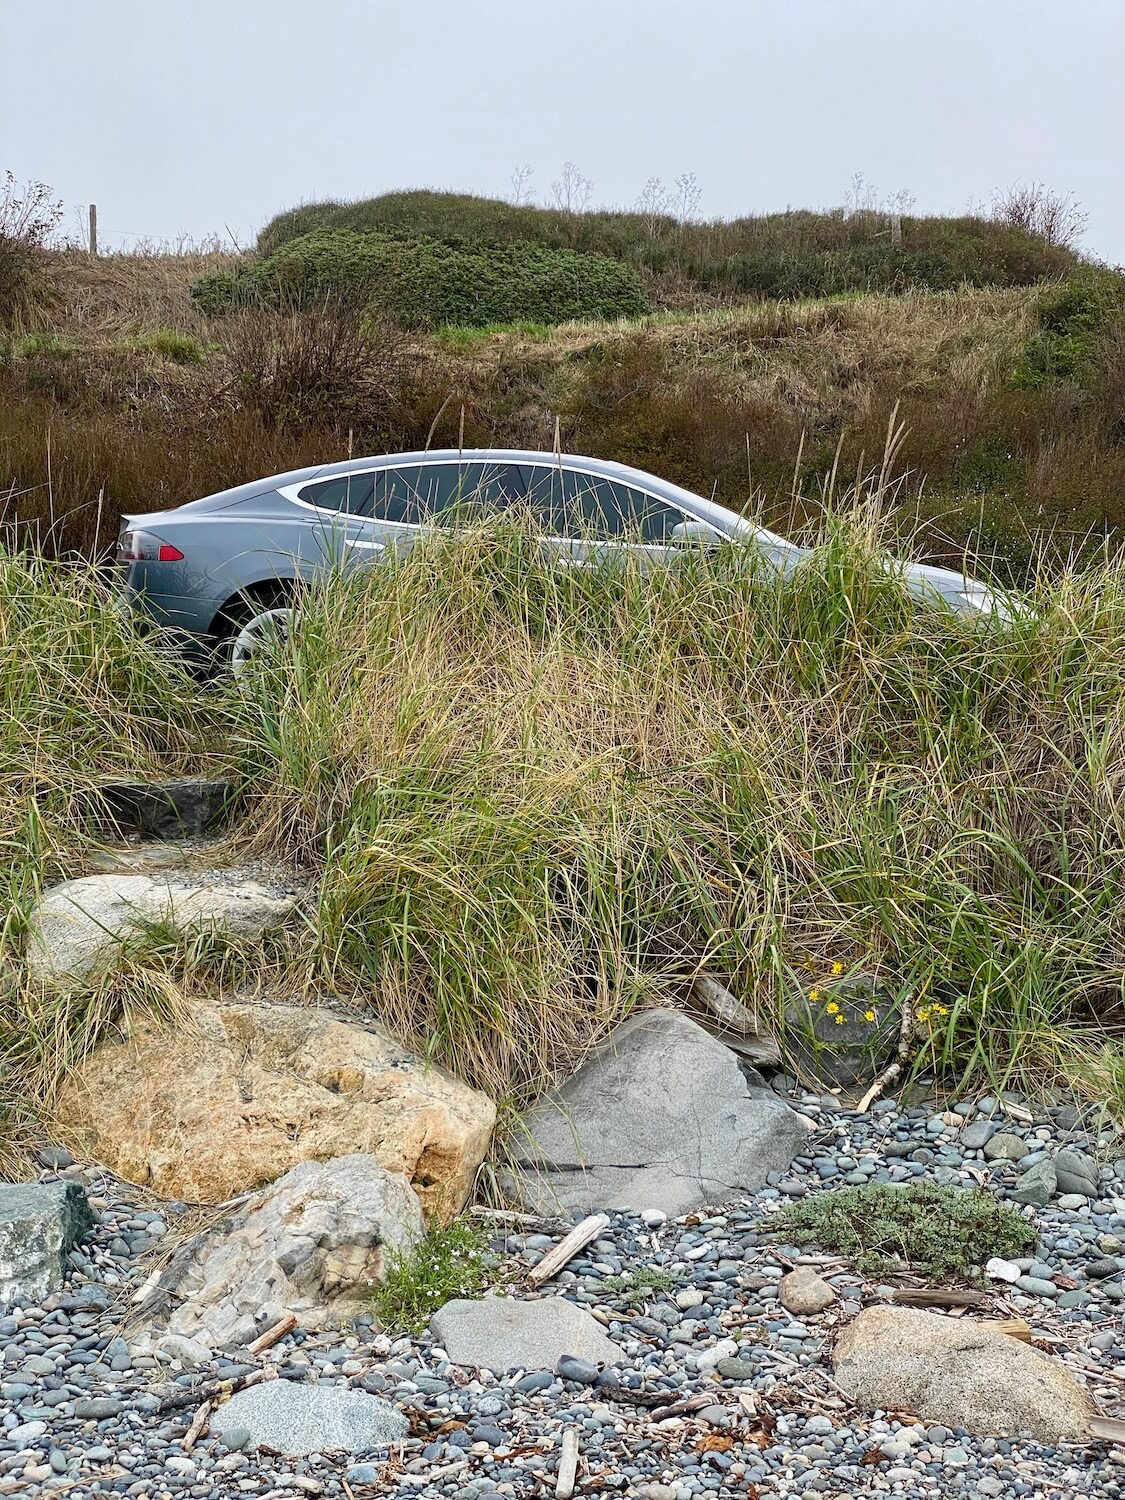 A Tesla S Series vehicle hides behind some green and yellow sea grass, only partially revealing the electric vehicle parked along side the road.